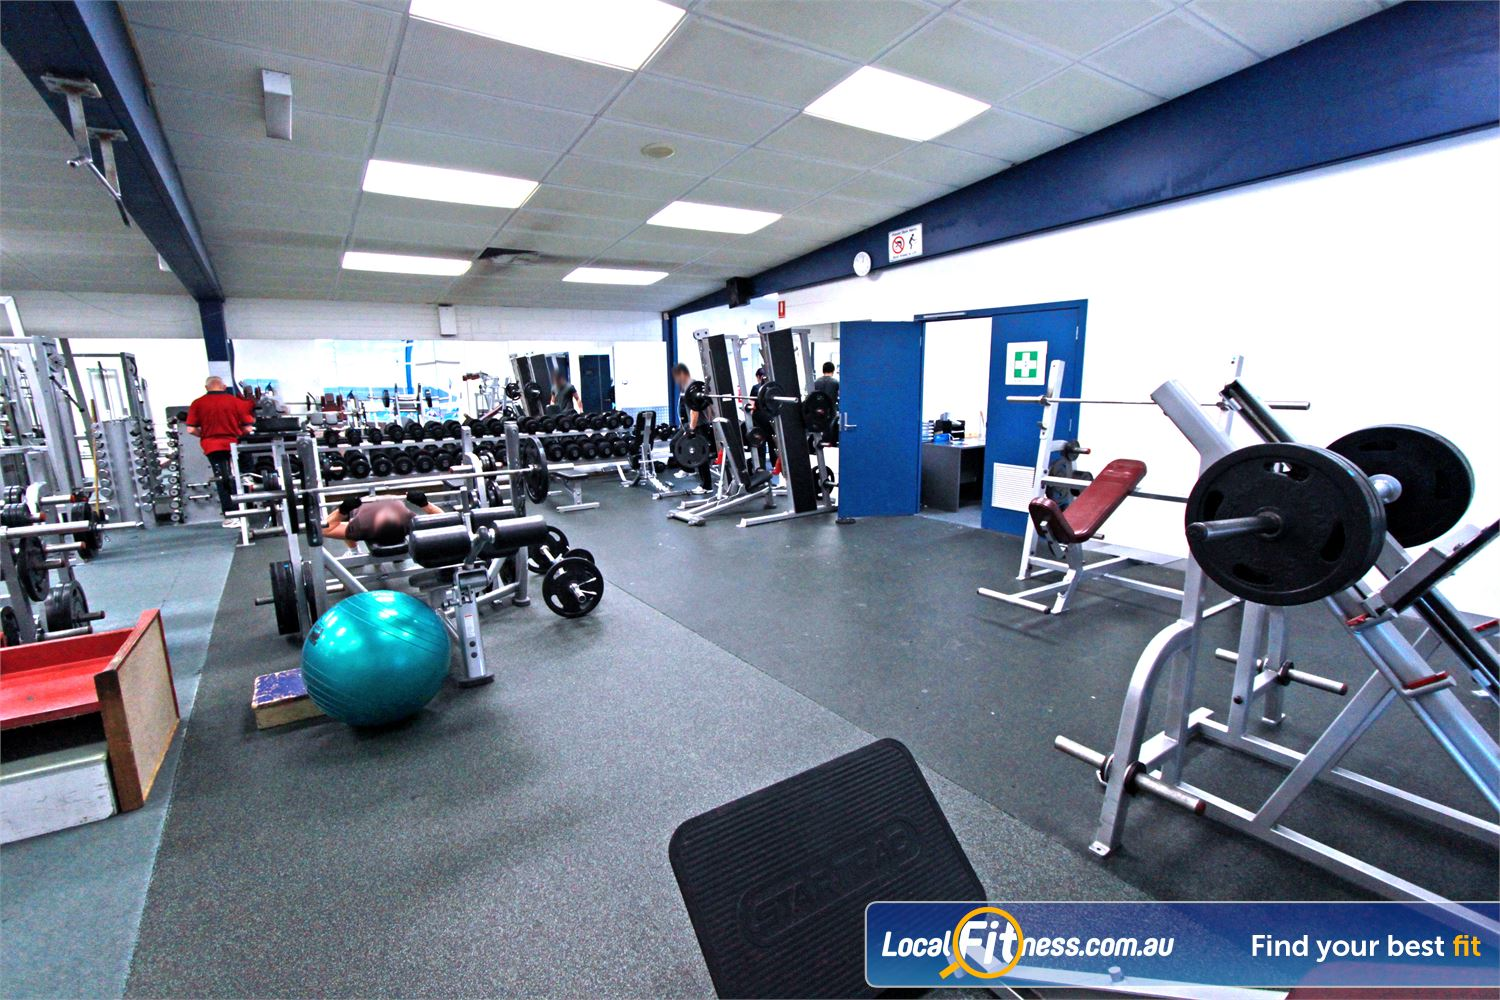 East Keilor Leisure Centre Near Keilor Park The gym area includes dumbbells, barbells and more.